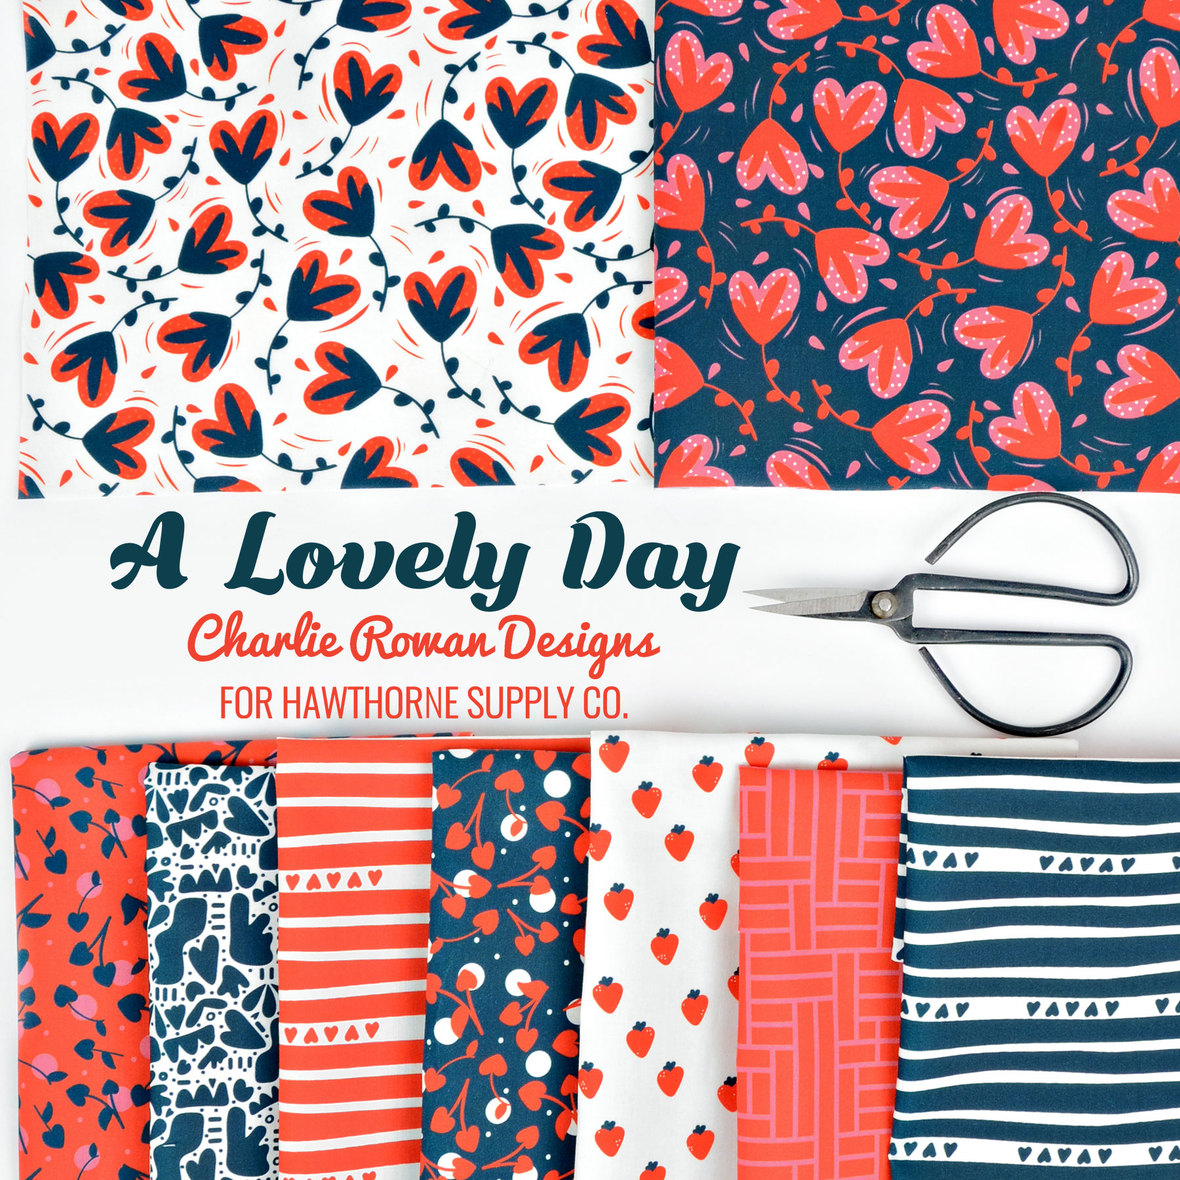 A-Lovely-Day-Charlie-Rowan-Designs-Fabric-at-Hawthorne-Supply-Co